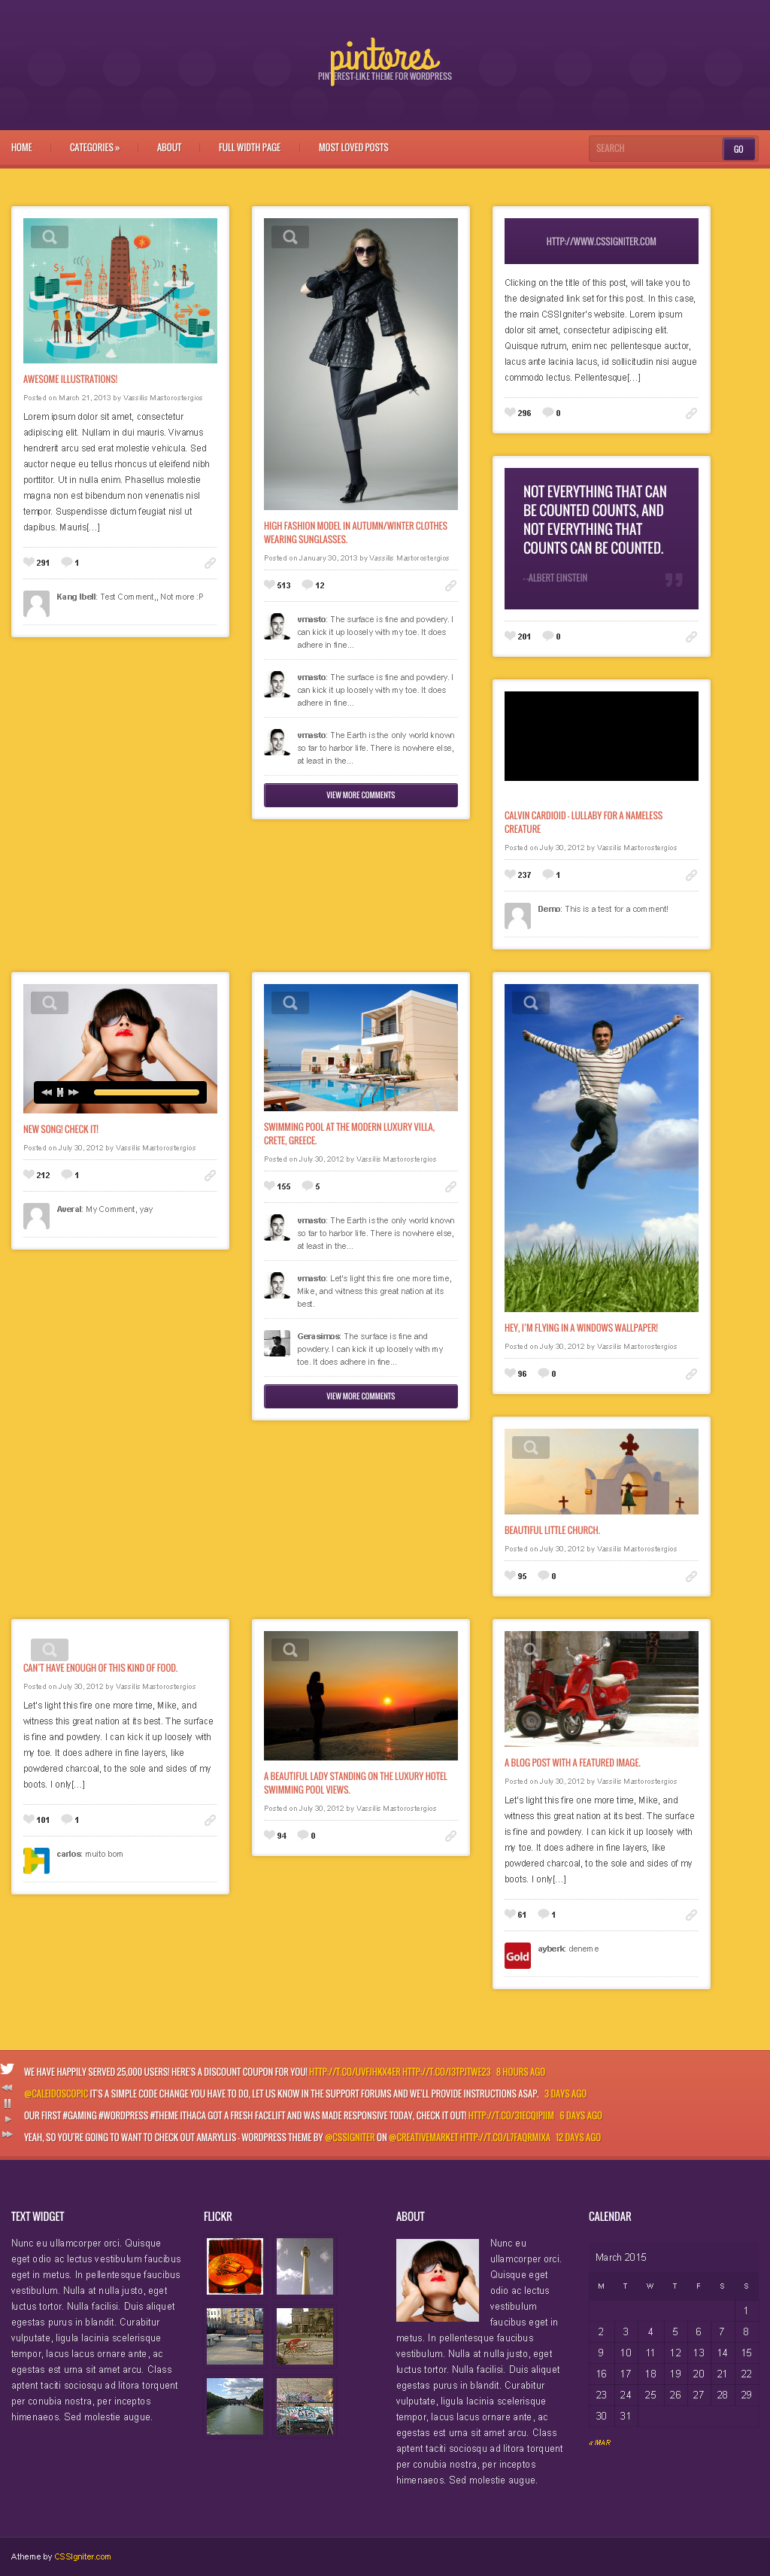 wordpress-pinterest-themes-pintores